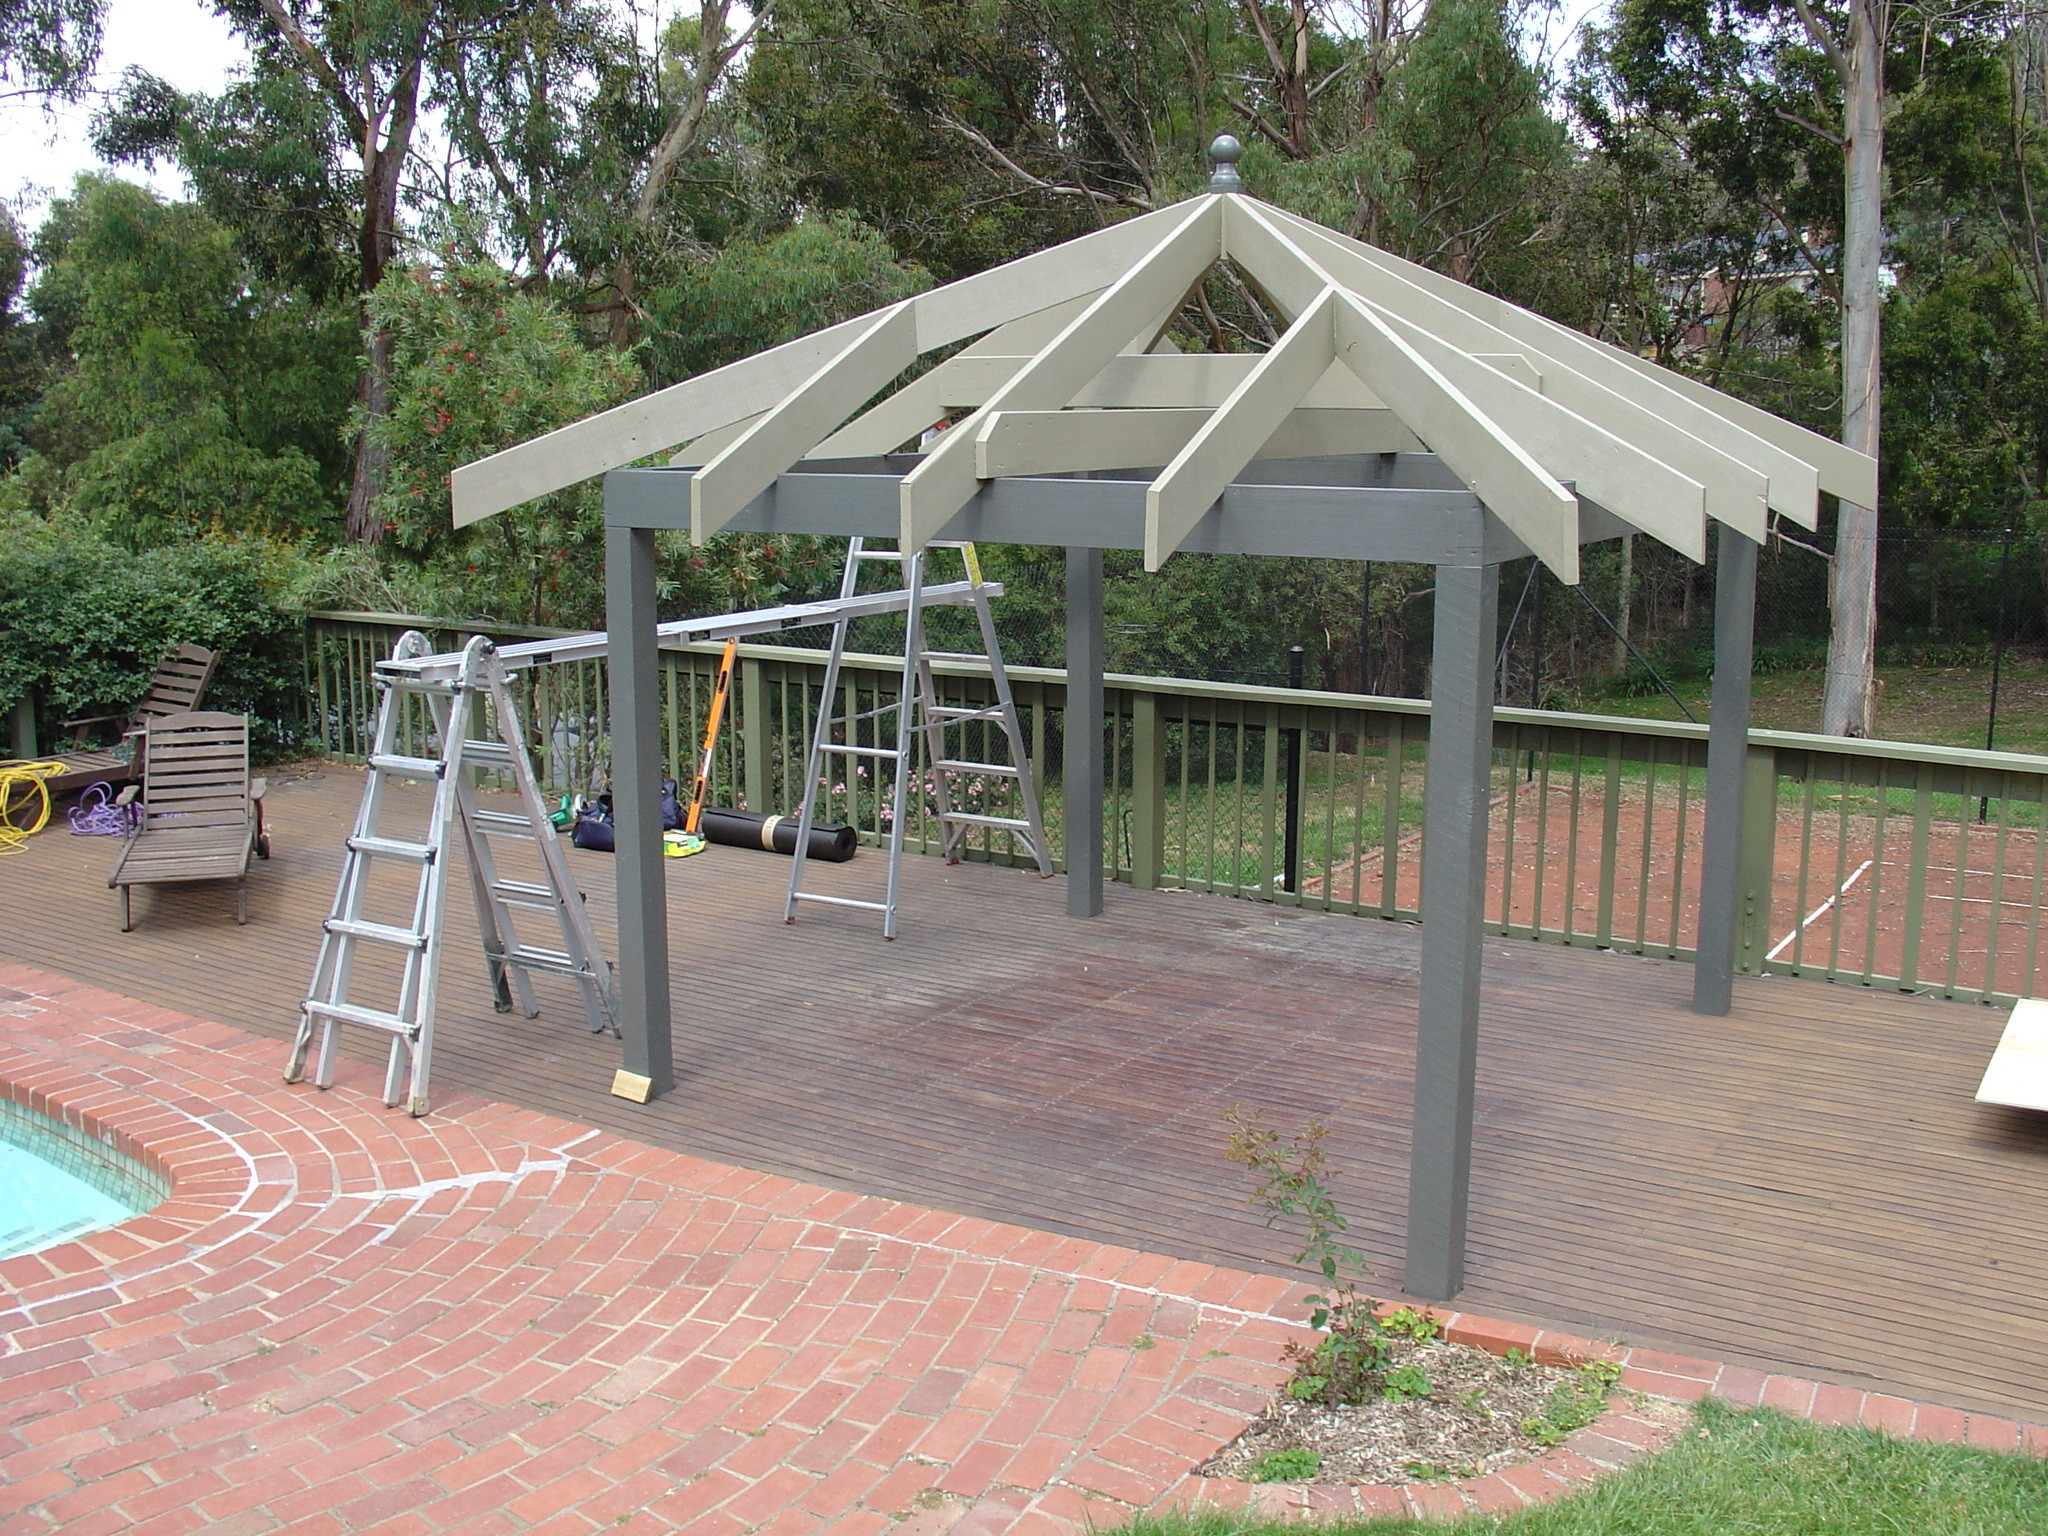 Install Gazebo Roof Garden Outdoor